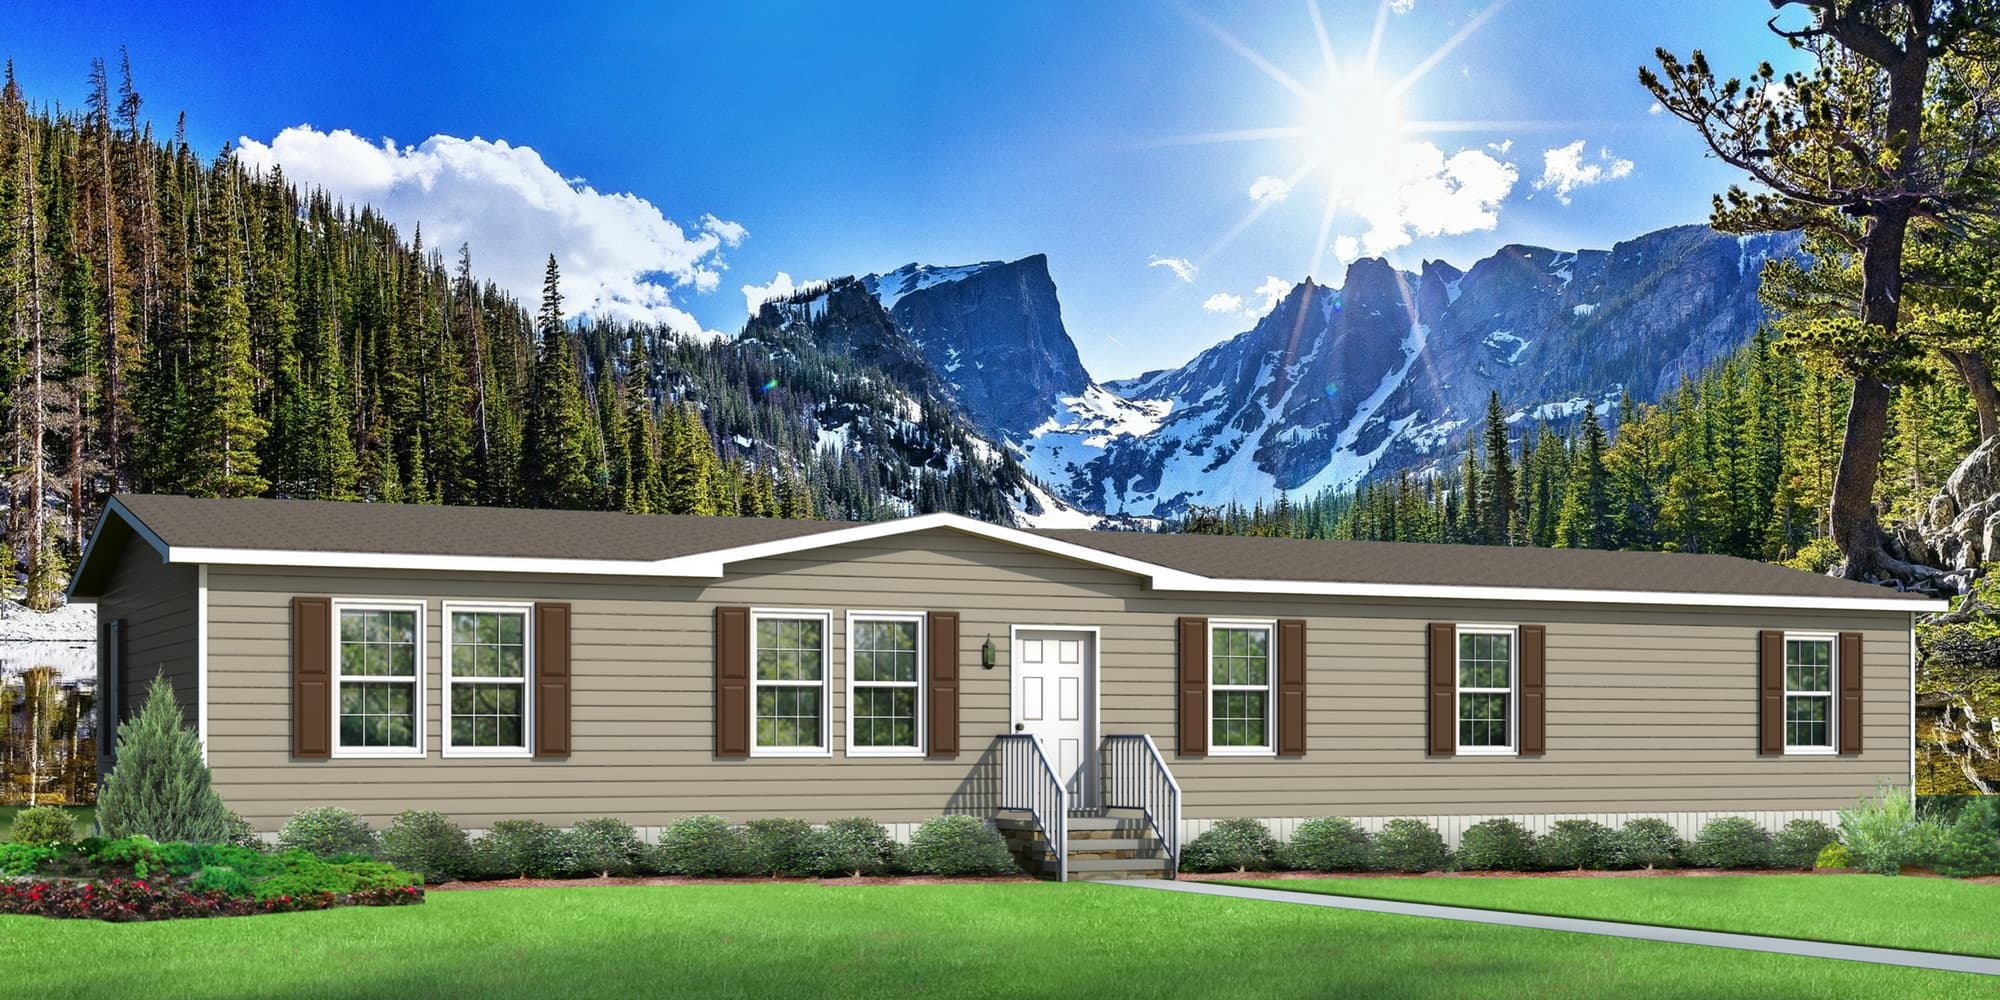 100% VA Manufactured Home Loans | Top Rated Local® Lender ... Nationwide Mobile Home Financing on mobile health care, commercial financing, mobile banking, mobile security, mobile gardens, mobile marketing, home improvement financing,